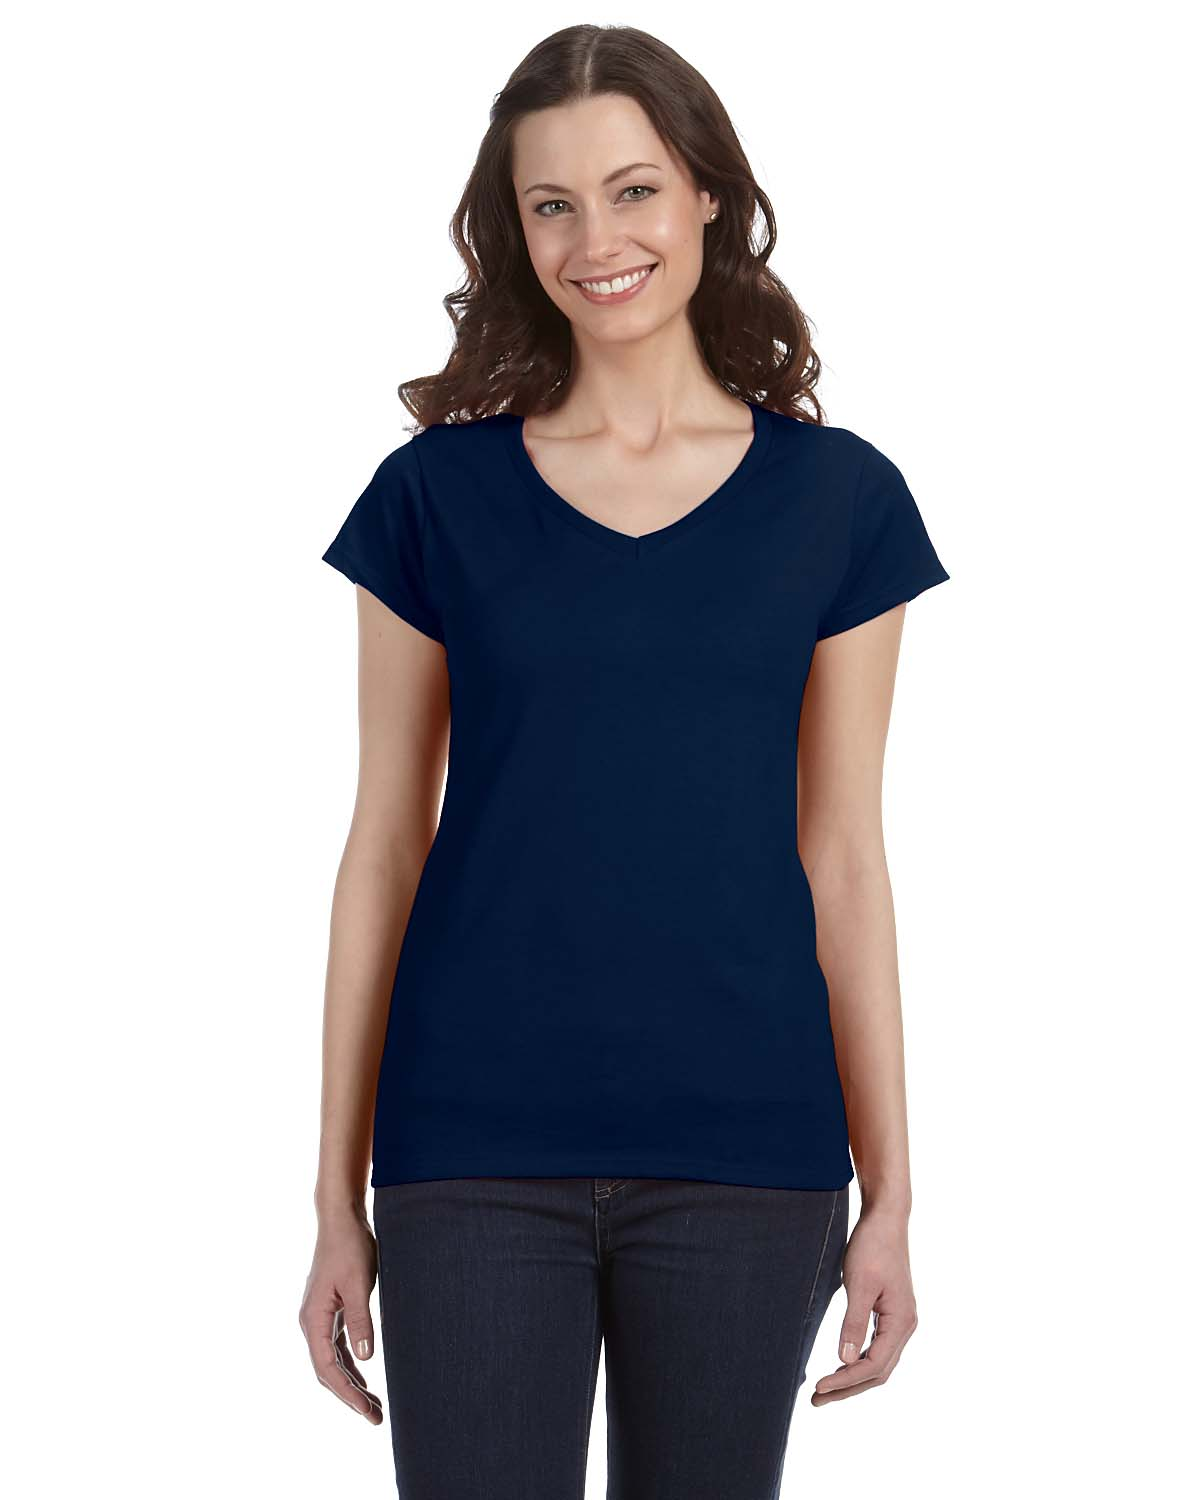 Gildan SoftStyle® Ladies 4.5 Oz. Junior Fit V-Neck T-Shirt